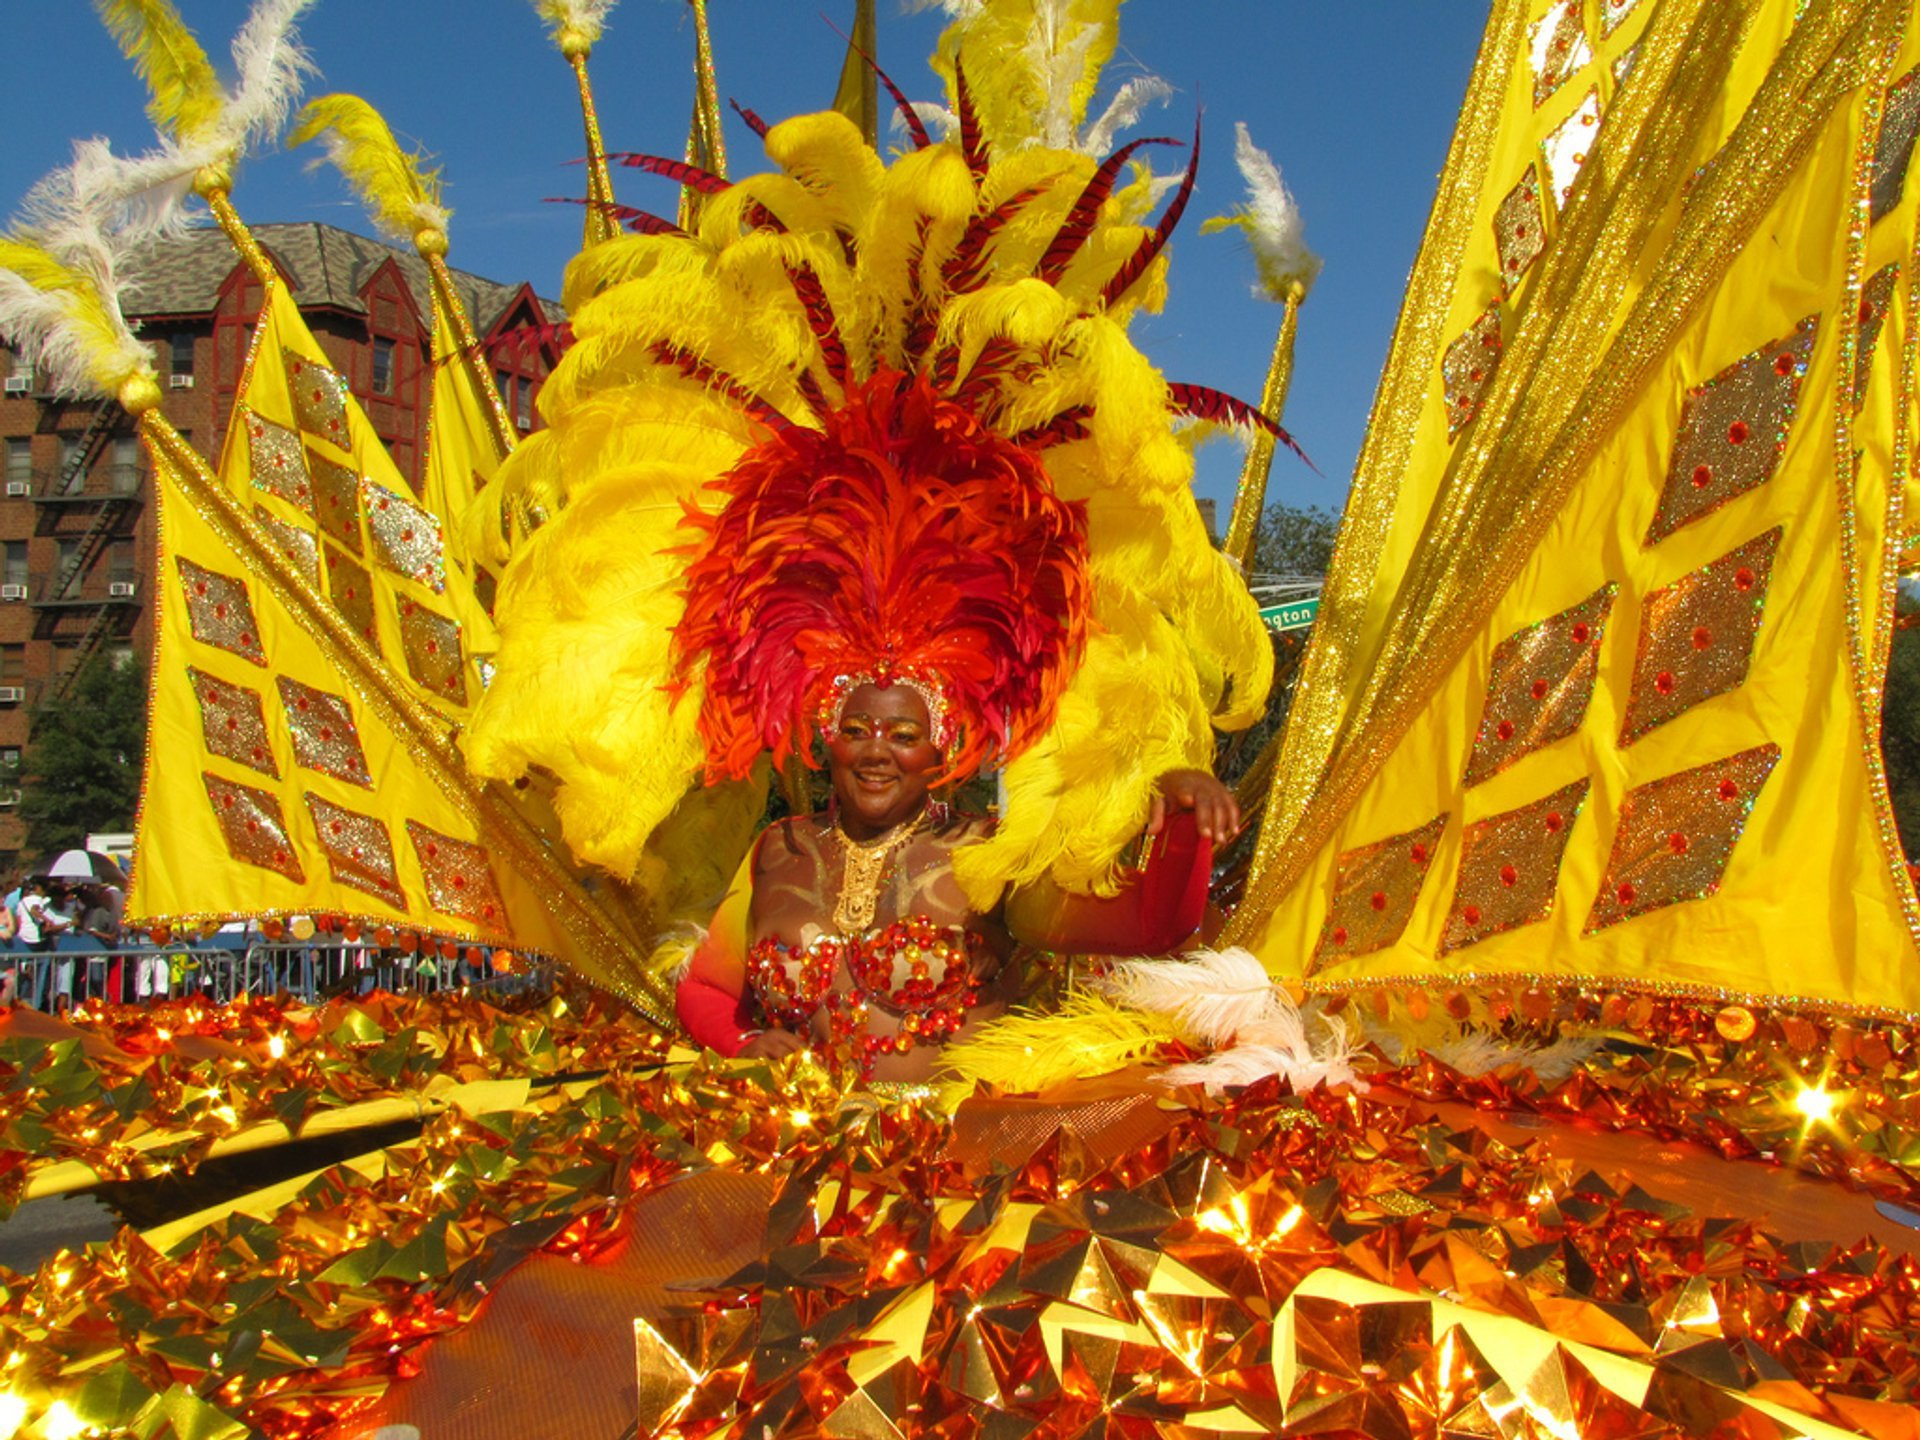 West Indian or Labour Day Parade in New York - Best Season 2020